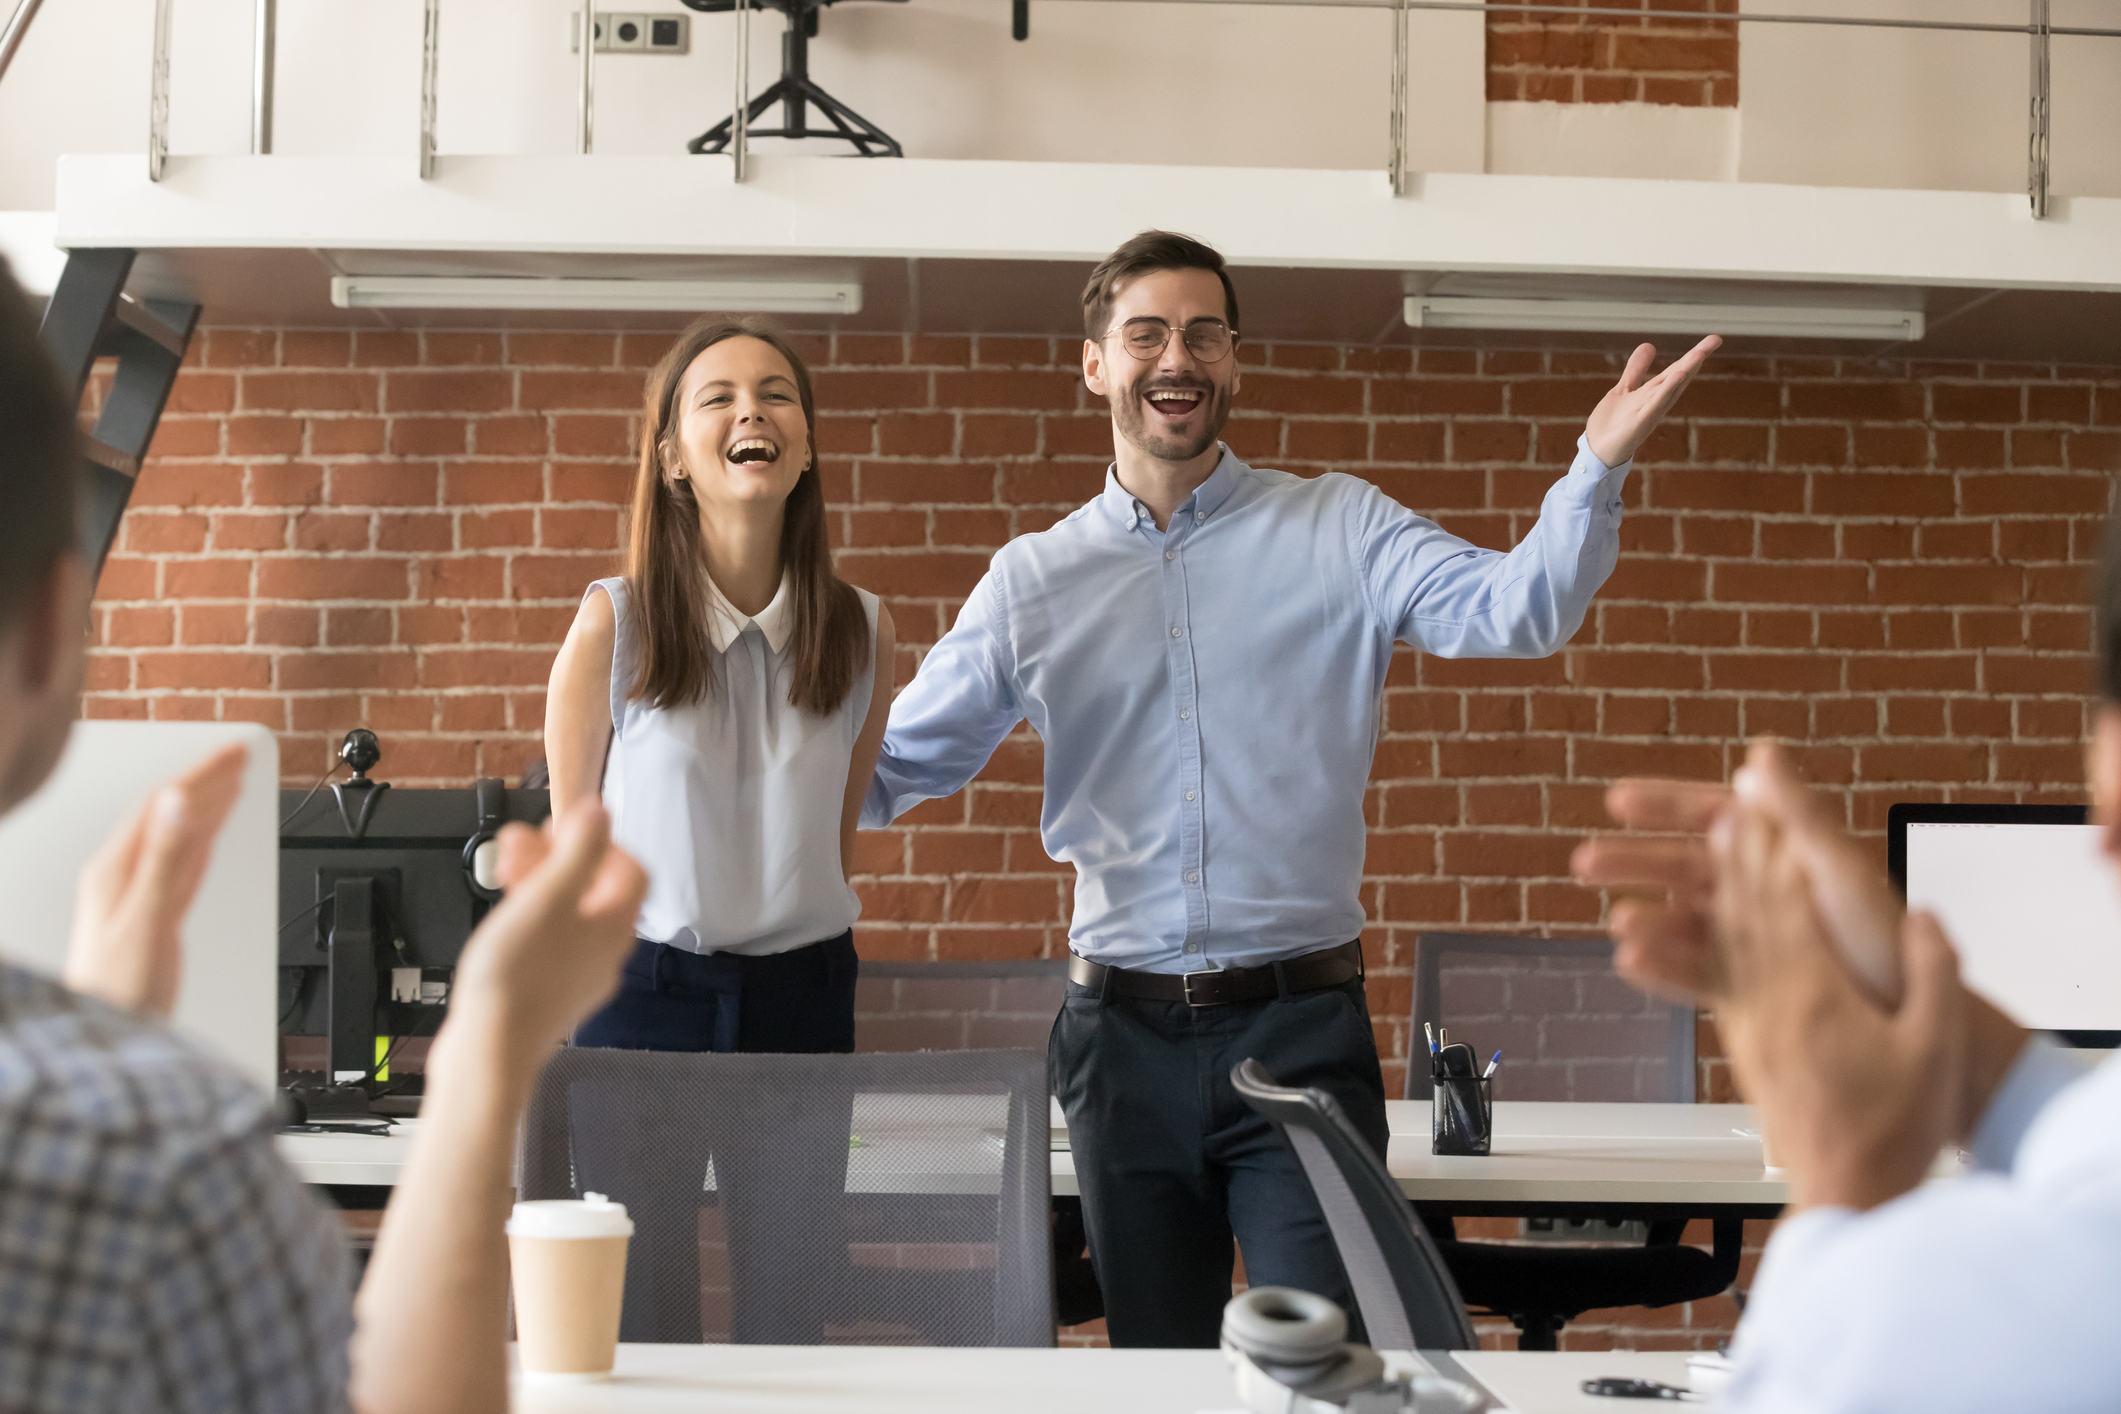 Excited team leader congratulating employee with promotion while team applauding